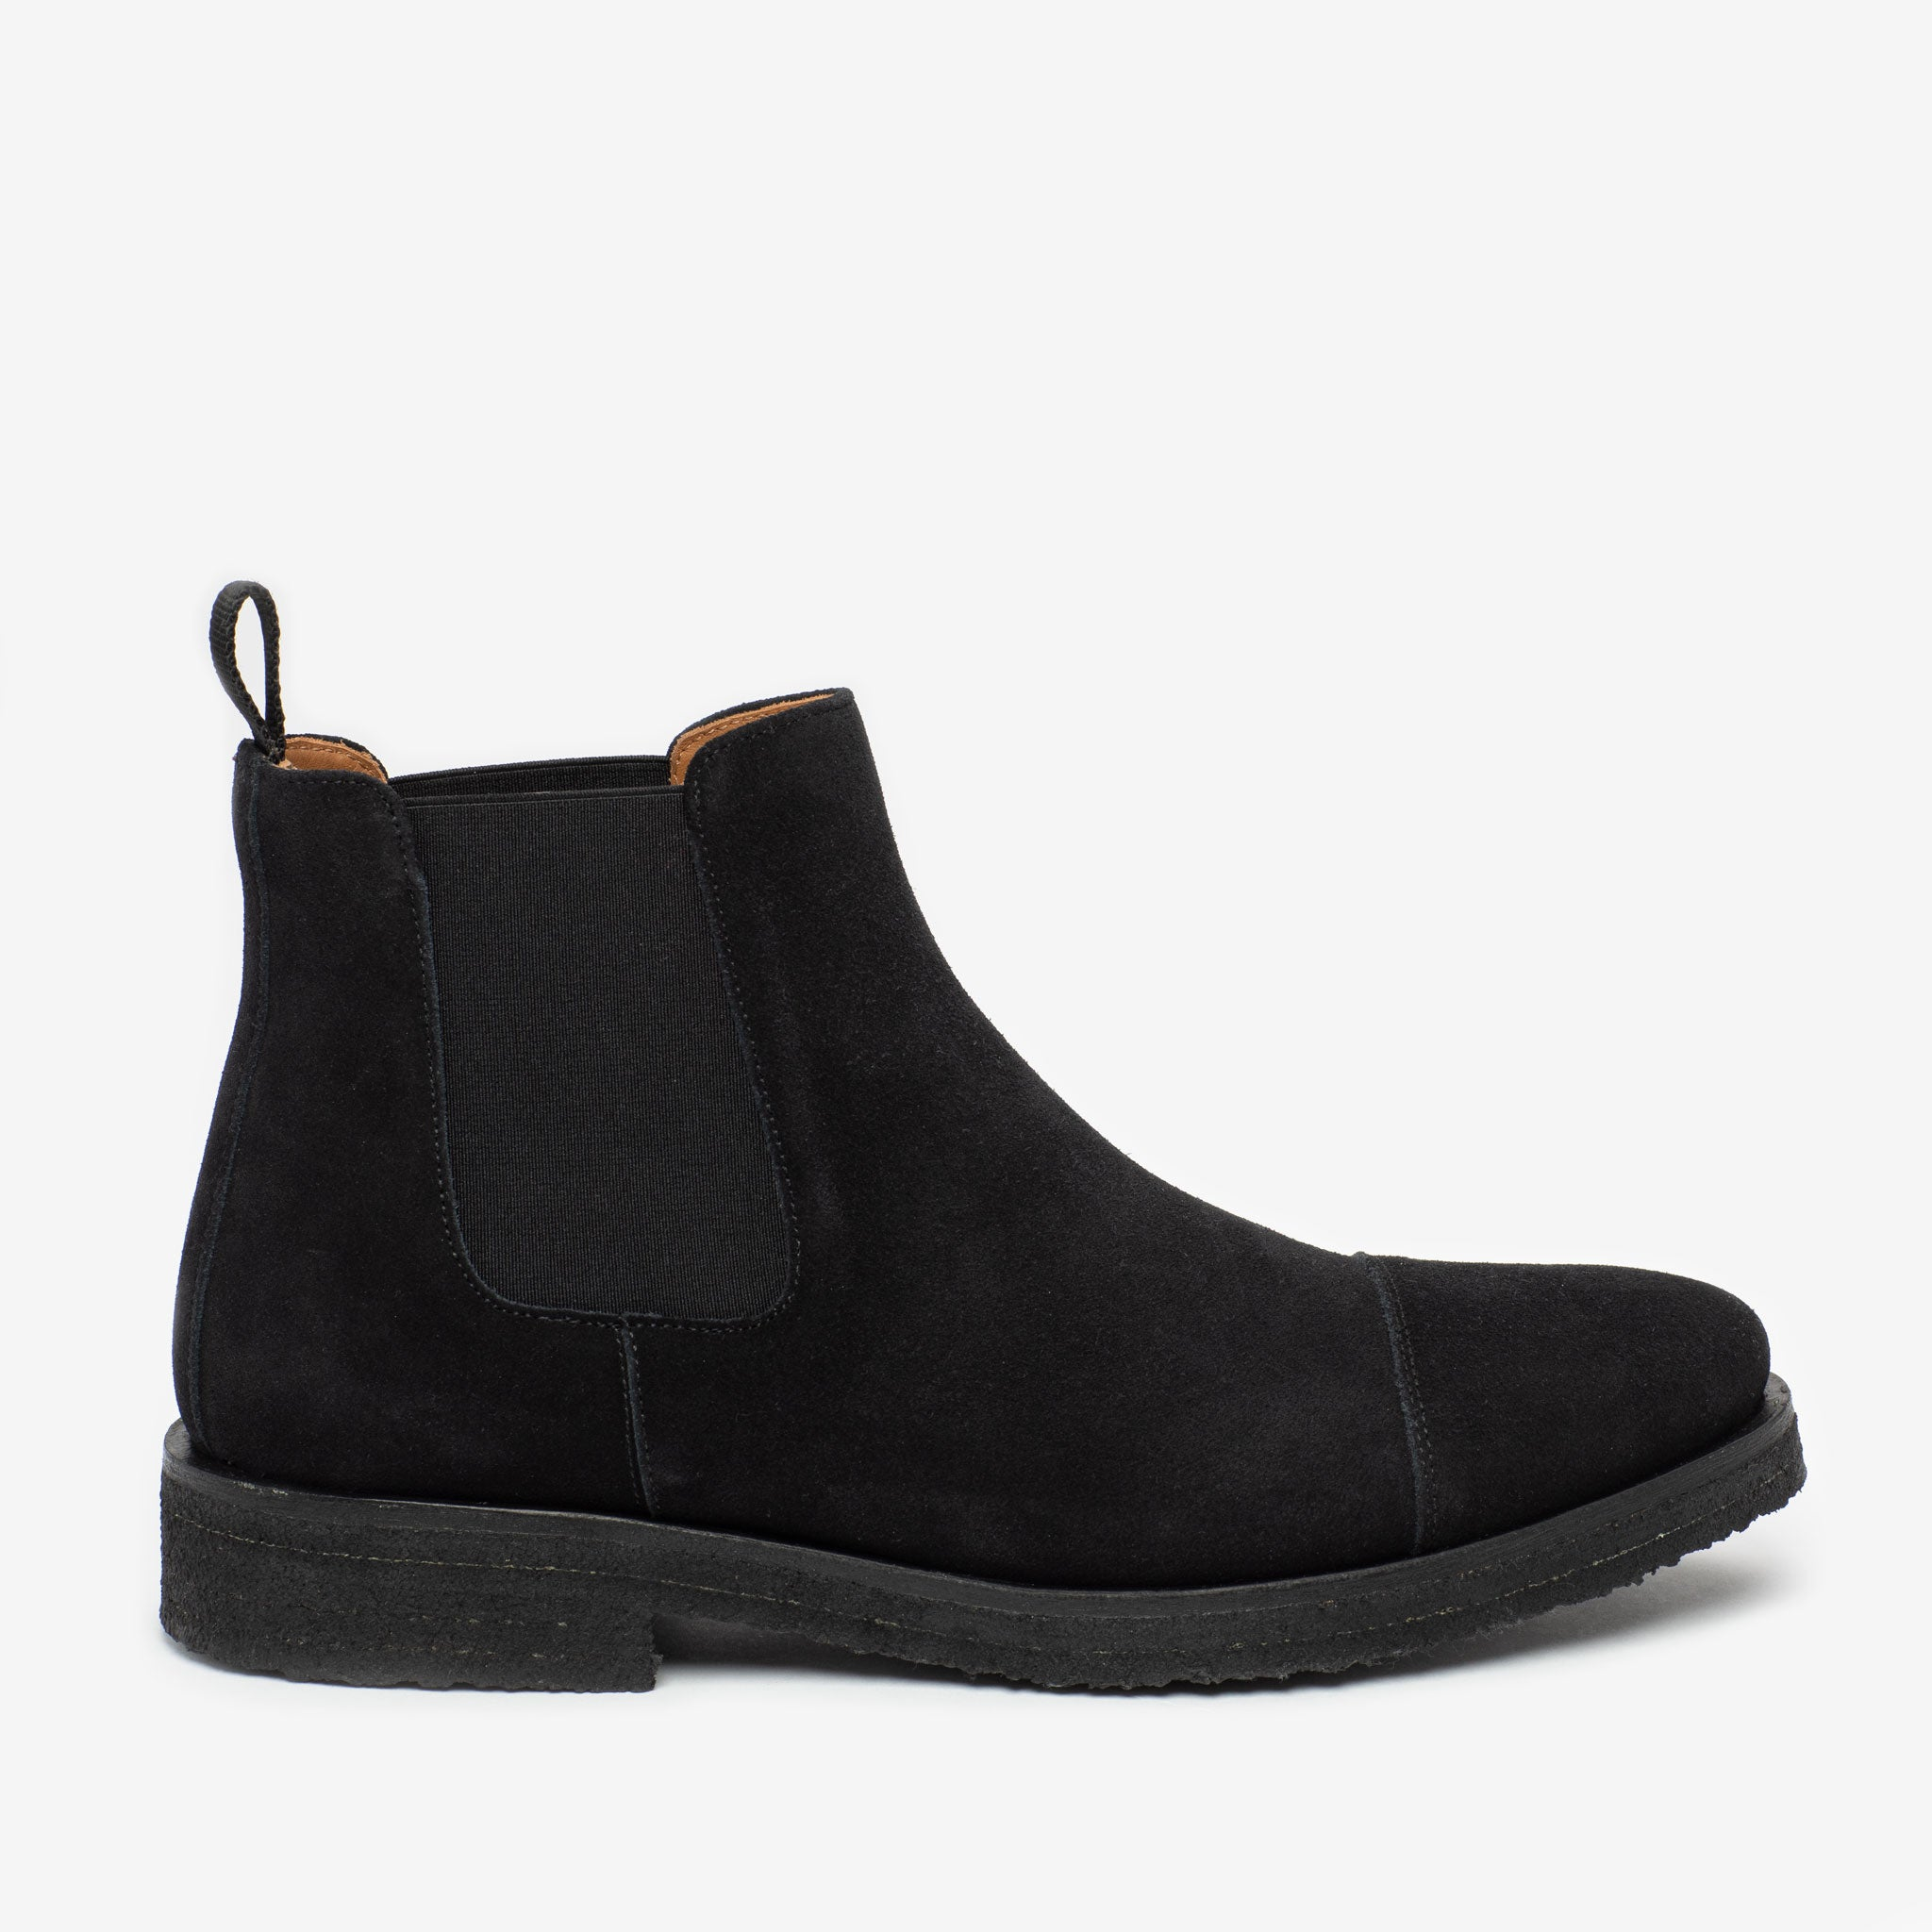 The Outback Boot in Black side veiw